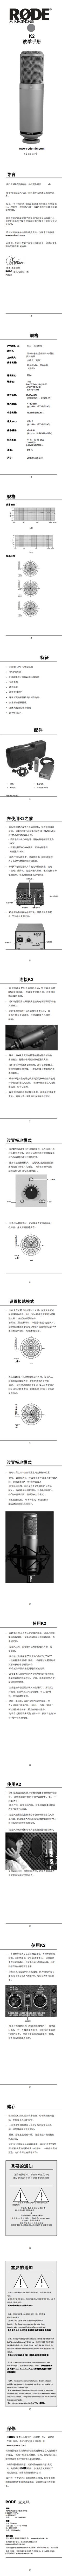 K2_product_manual_1_16_translate_Chinese_0.png